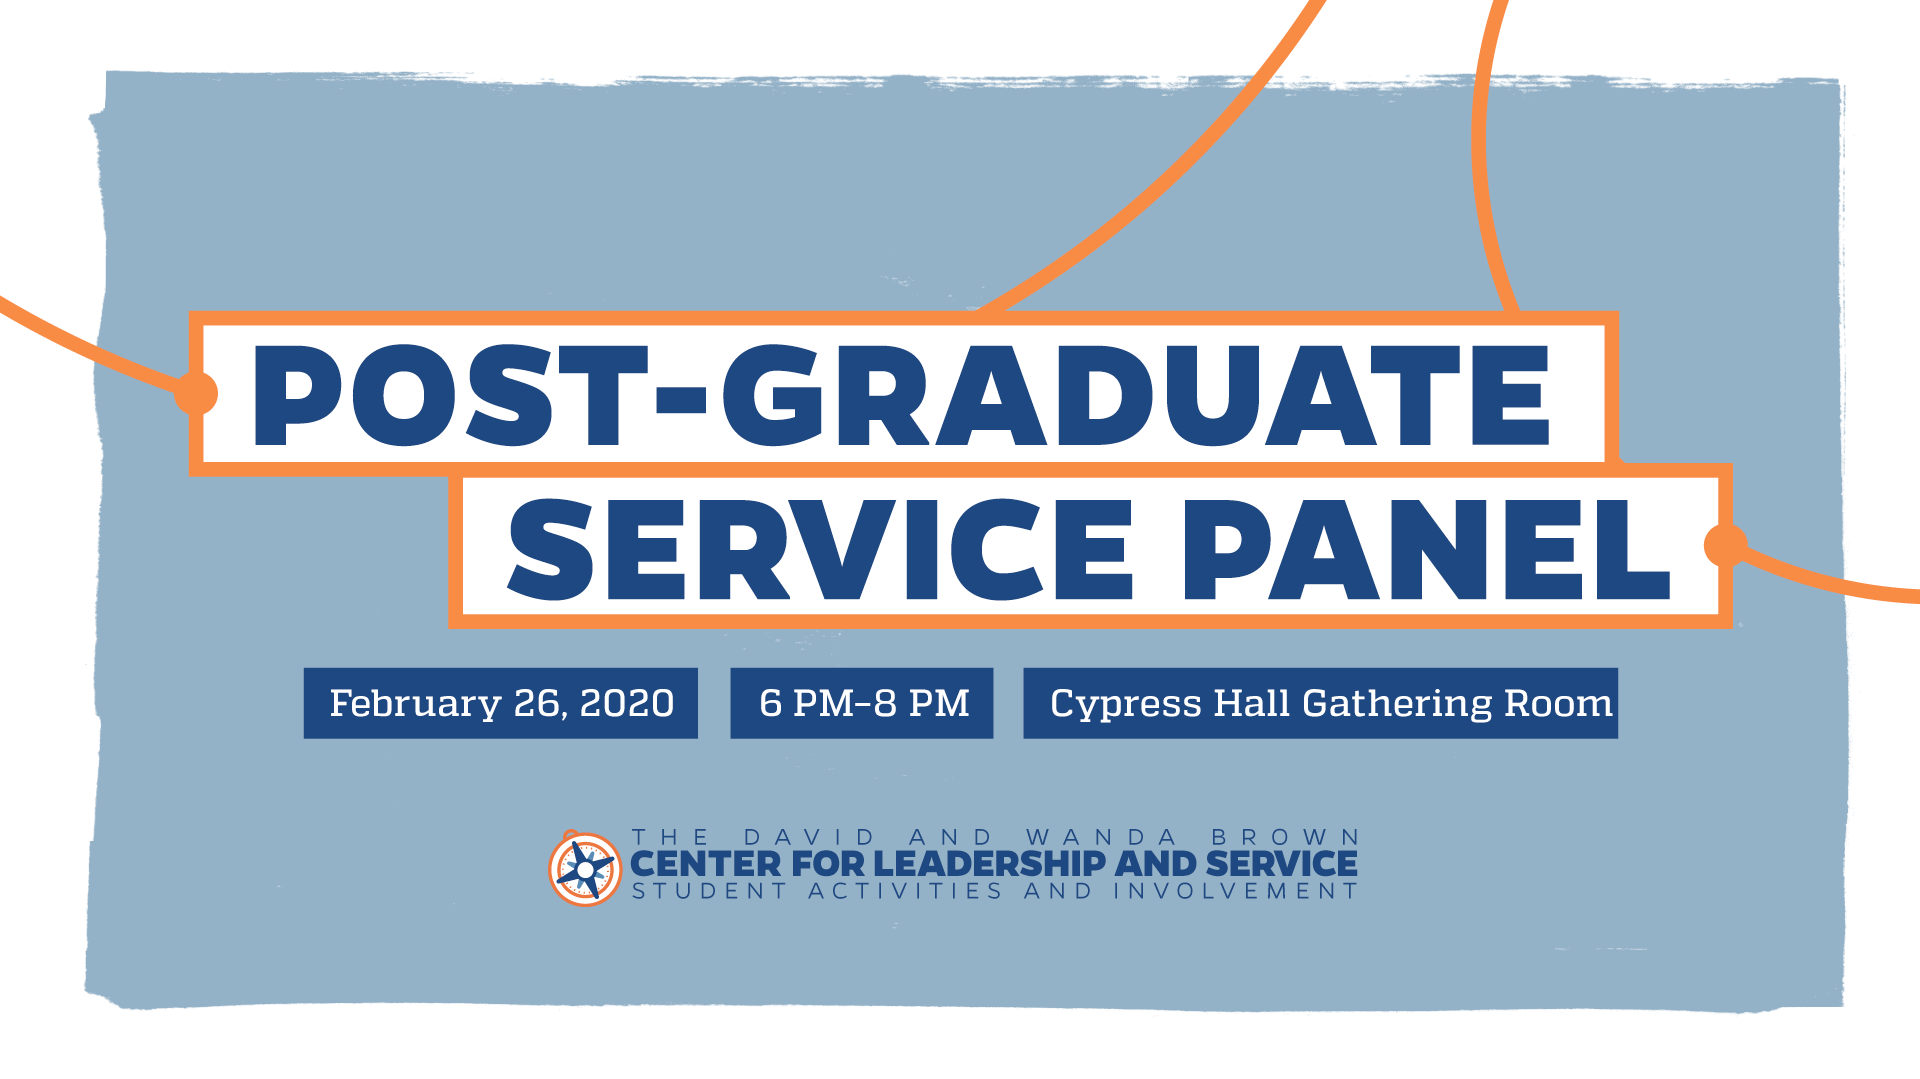 Post Graduate Service Panel graphic with event on Feb 26 from 6 to 8 pm in the Cypress Hall Gathering Room